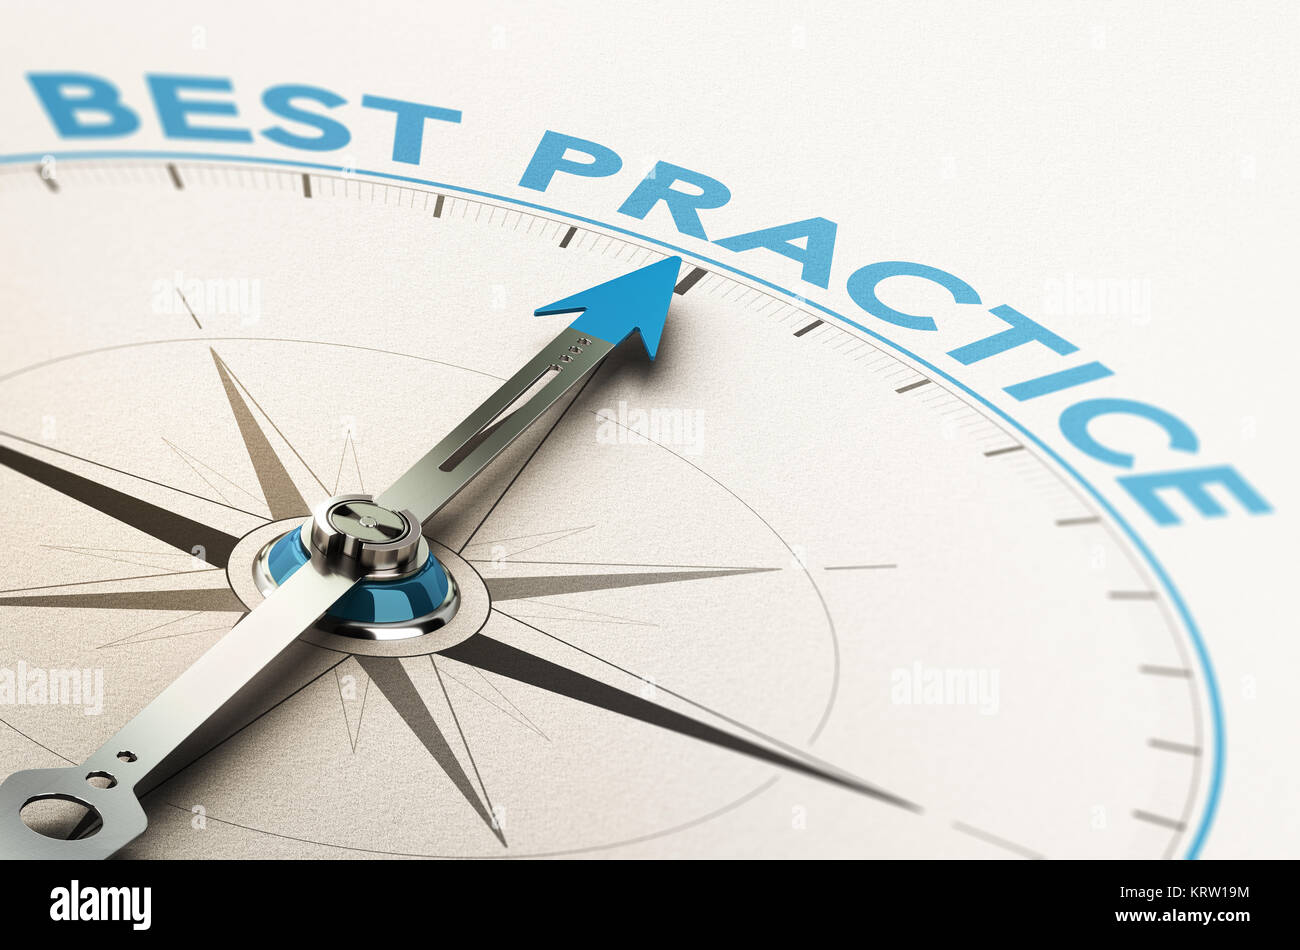 Methodology Best Practice Knowledge Management - Stock Image